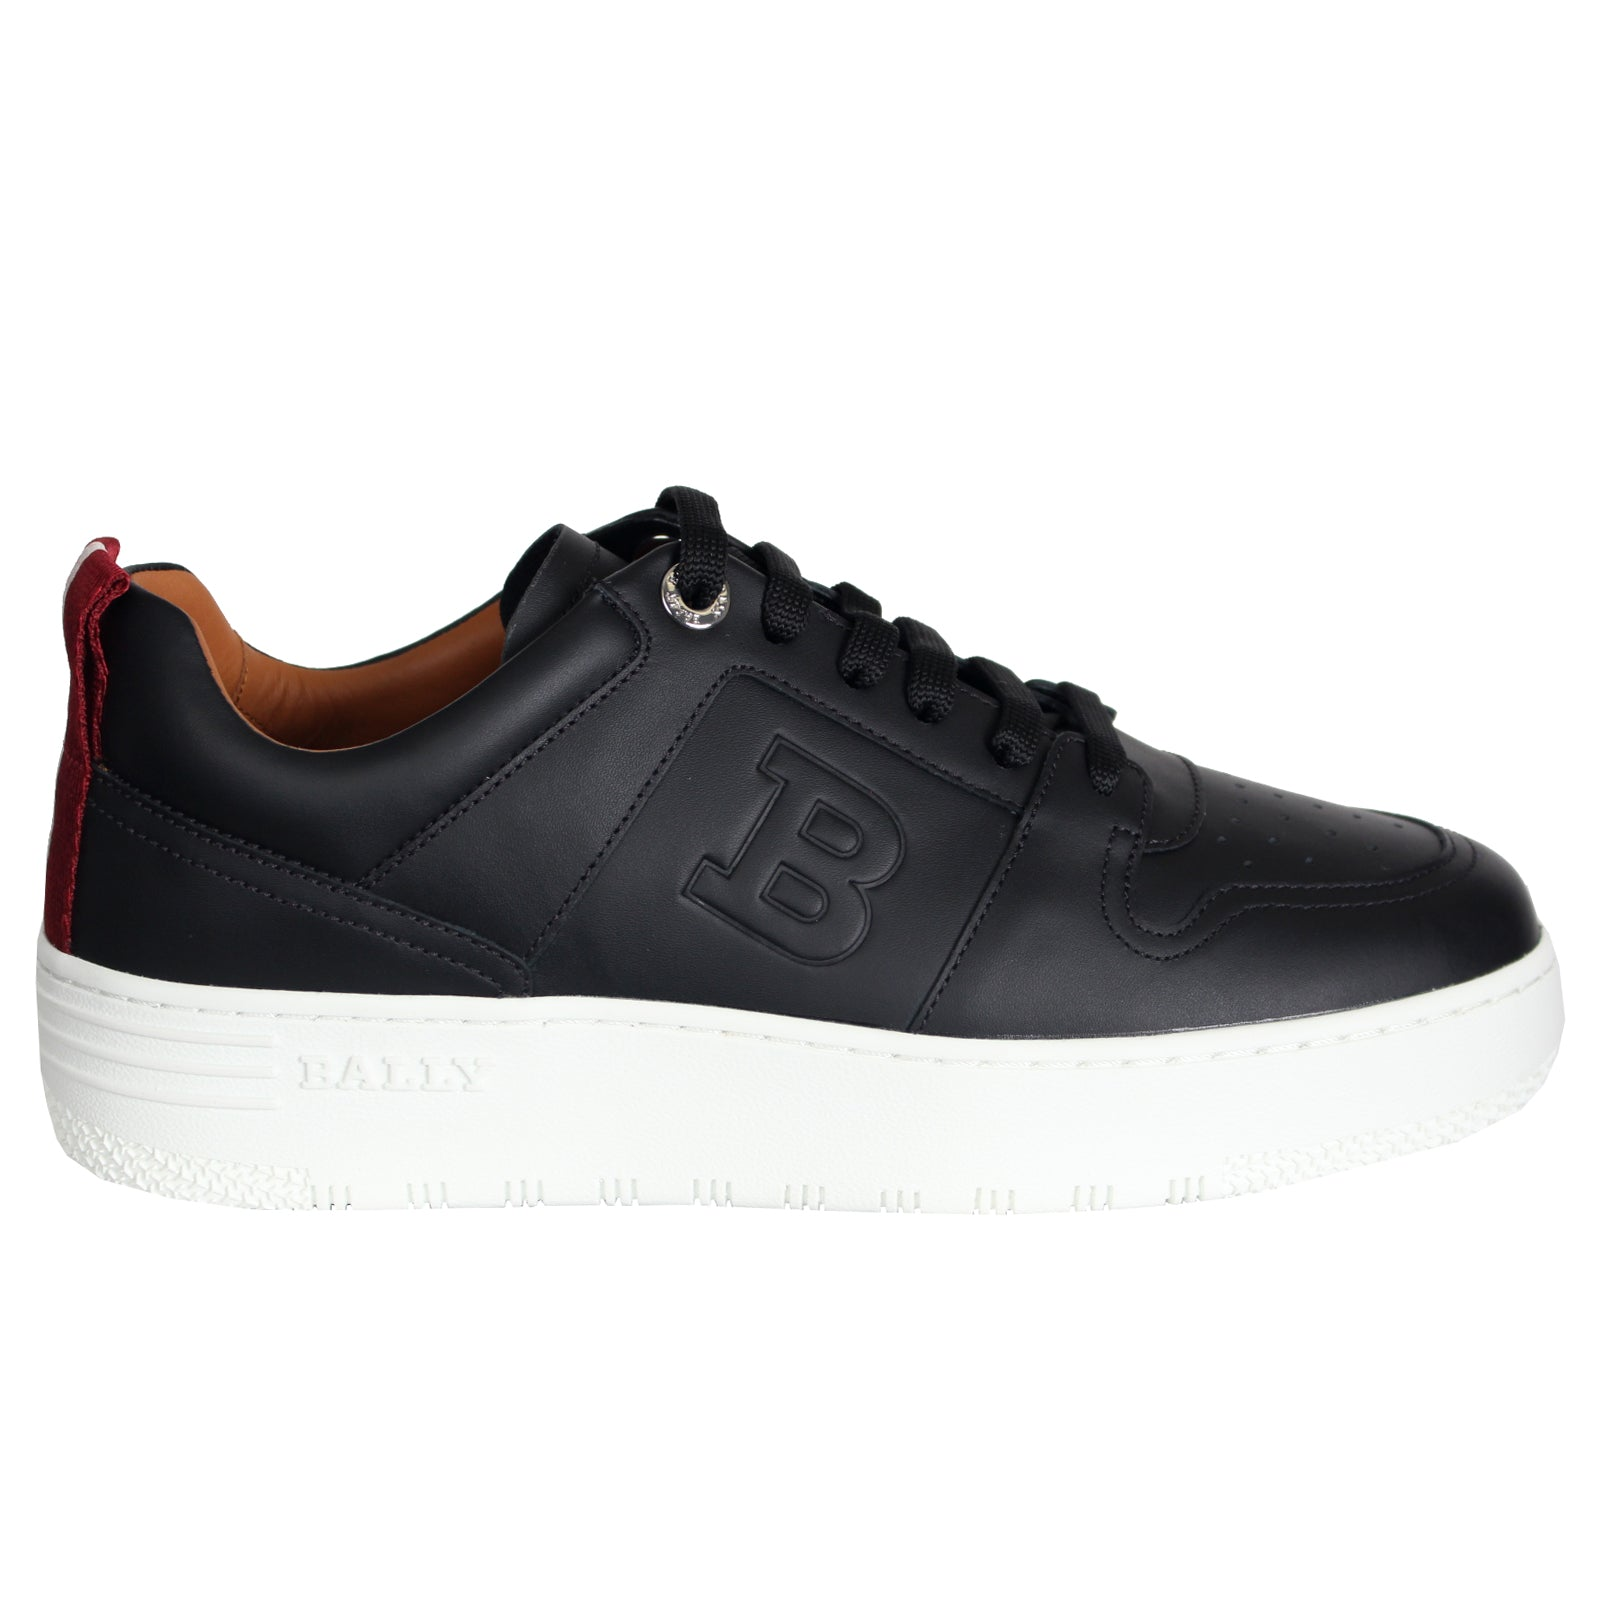 Bally Odino/00 Black Calf Plain Sneaker